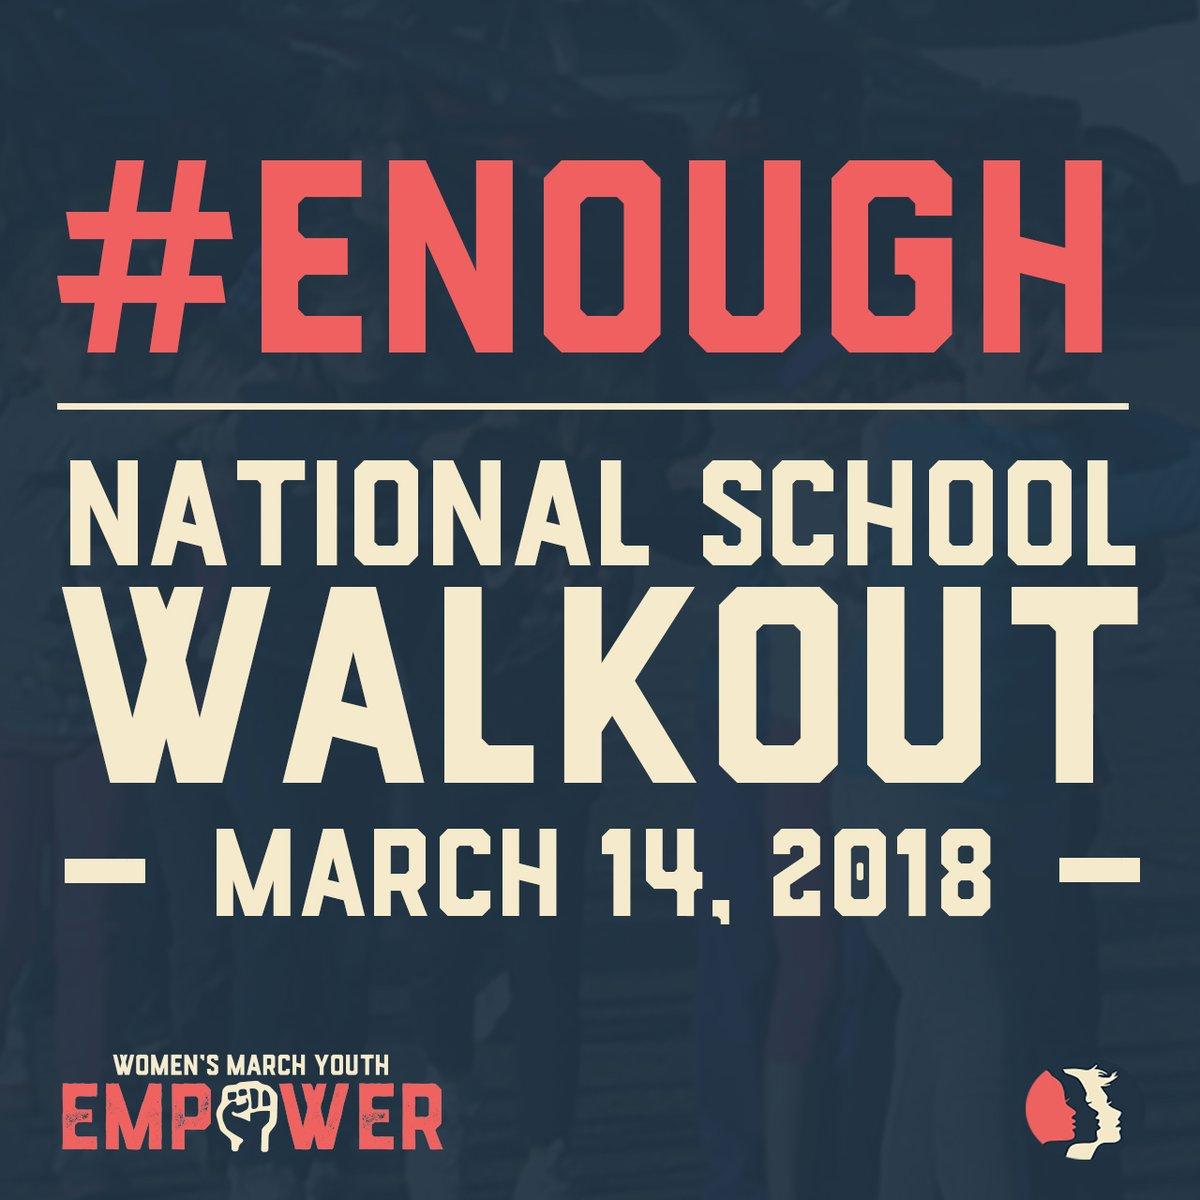 3-14-18: National School Walkout - Women's March Youth EMPOWER is calling for students, teachers, school administrators, parents and allies to take part in a #NationalSchoolWalkoutfor 17 minutes at 10am across every time zone on March 14, 2018 to protest Congress' inaction to do more than tweet thoughts and prayers in response to the gun violence plaguing our schools and neighborhoods. We need action. Students and allies are organizing the national school walkout to demand Congress pass legislation to keep us safe from gun violence at our schools, on our streets and in our homes and places of worship.Students and staff have the right to teach and learn in an environment free from the worry of being gunned down in their classrooms or on their way home from school.Parents have the right to send their kids to school in the mornings and see them home alive at the end of the day.We are not safe at school. We are not safe in our cities and towns. Congress must take meaningful action to keep us safe and pass federal gun reform legislation that address the public health crisis of gun violence. We want Congress to pay attention and take note: many of us will vote this November and many others will join in 2020. Join us in saying #ENOUGH!Add your event to the map or find one near you here: https://www.actionnetwork.org/event_campaigns/enough-national-school-walkout